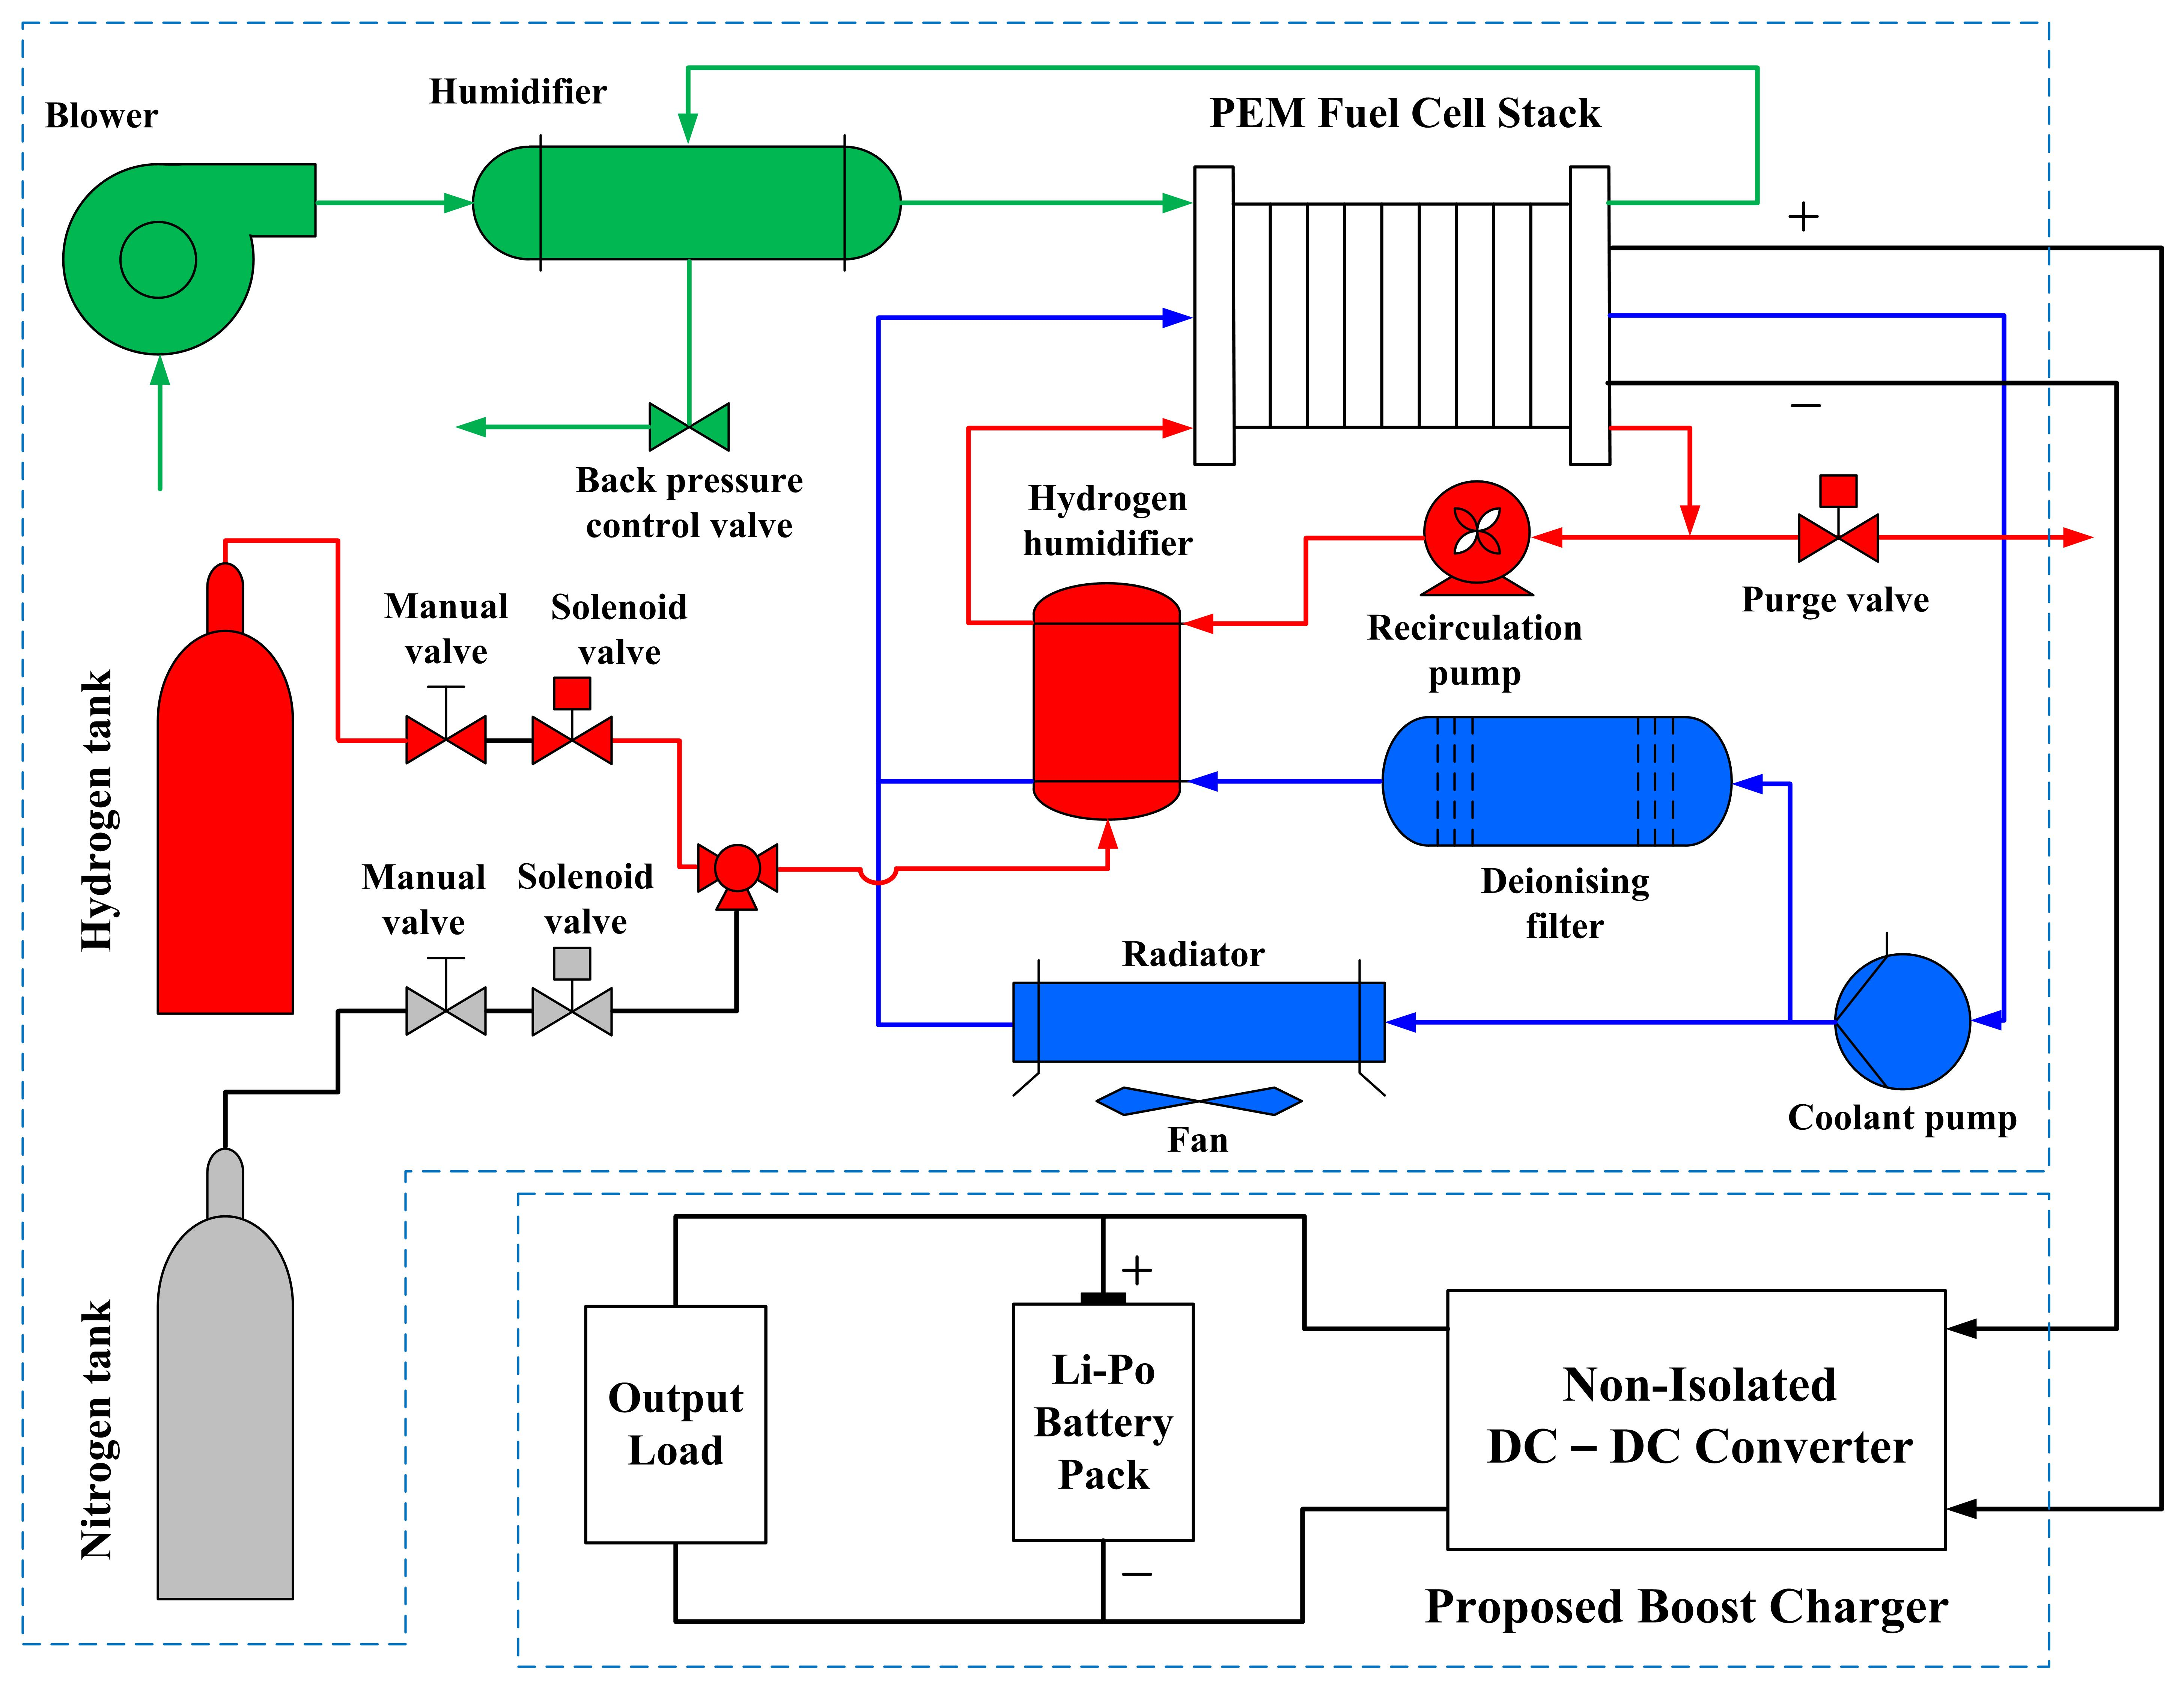 DESIGN OF A NON-ISOLATED PEM FUEL CELL BOOST CHARGER FOR